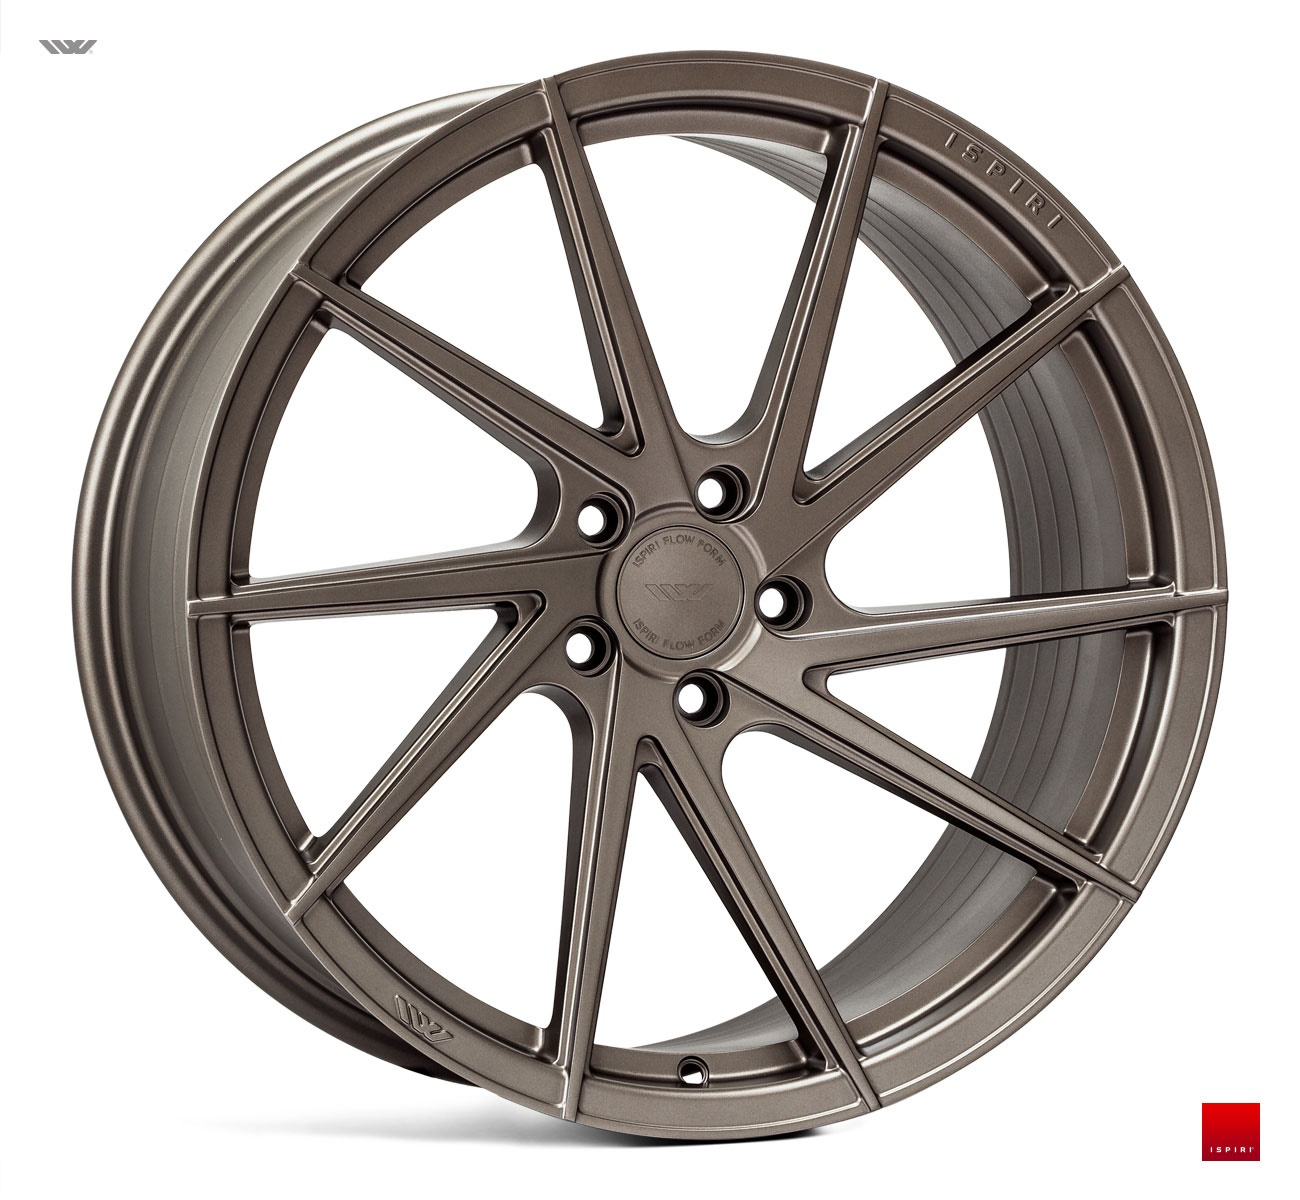 "NEW 19"" ISPIRI FFR1D MULTI-SPOKE DIRECTIONAL ALLOYS IN MATT CARBON BRONZE, WIDER 9.5"" REARS ET42/45"